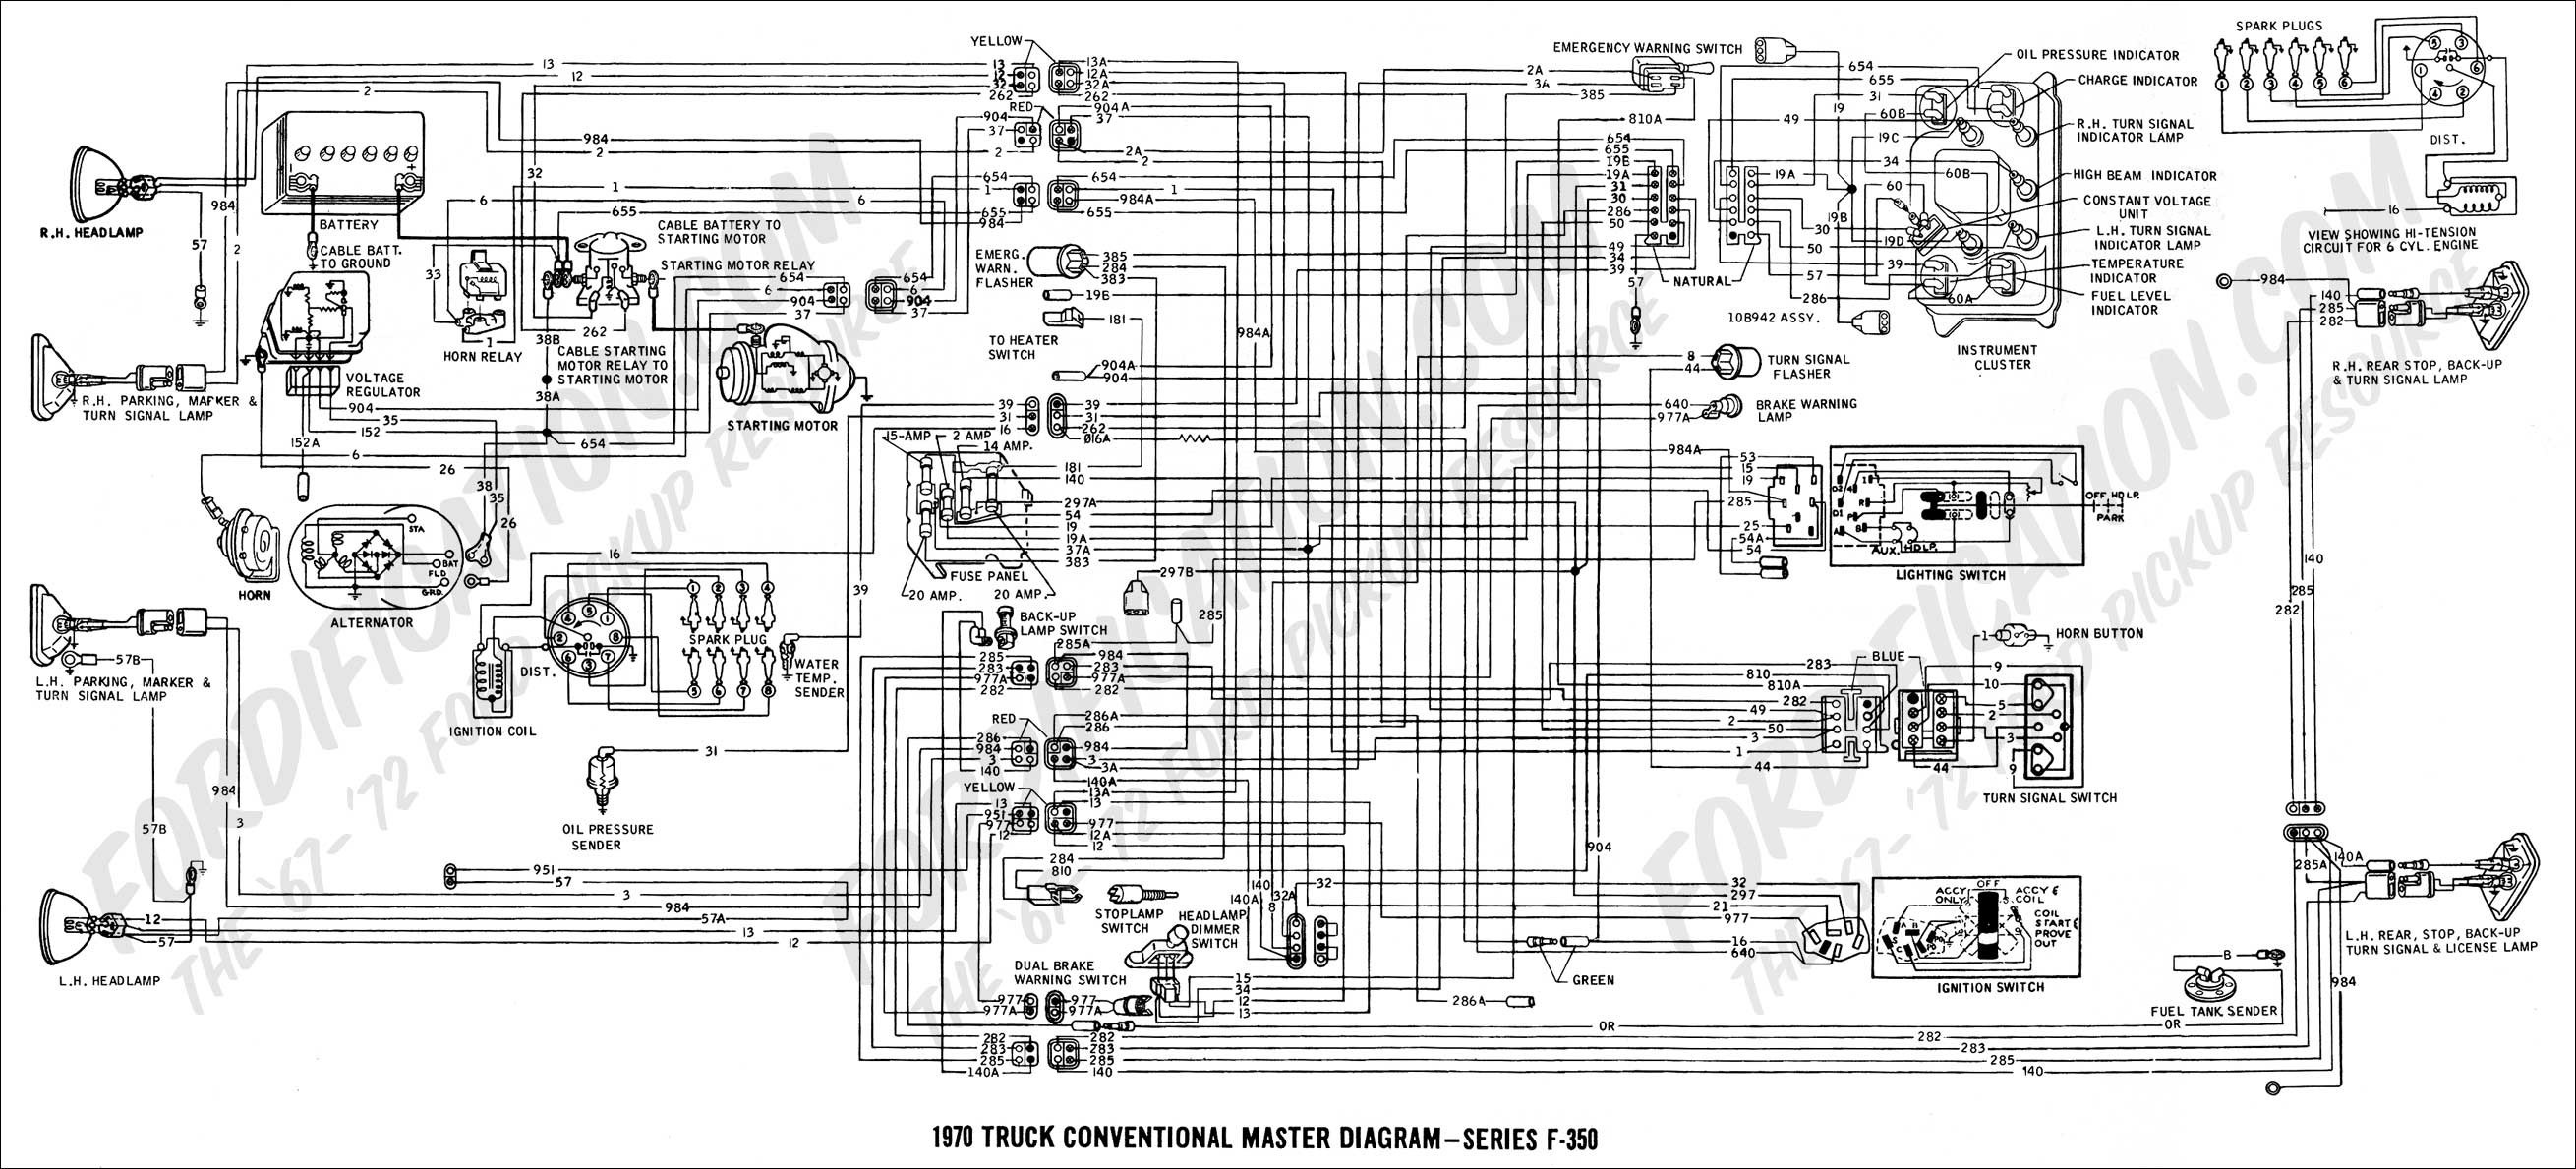 2005 ford Explorer Engine Diagram New ford Radio Wiring Harness Diagram  Diagram Of 2005 ford Explorer